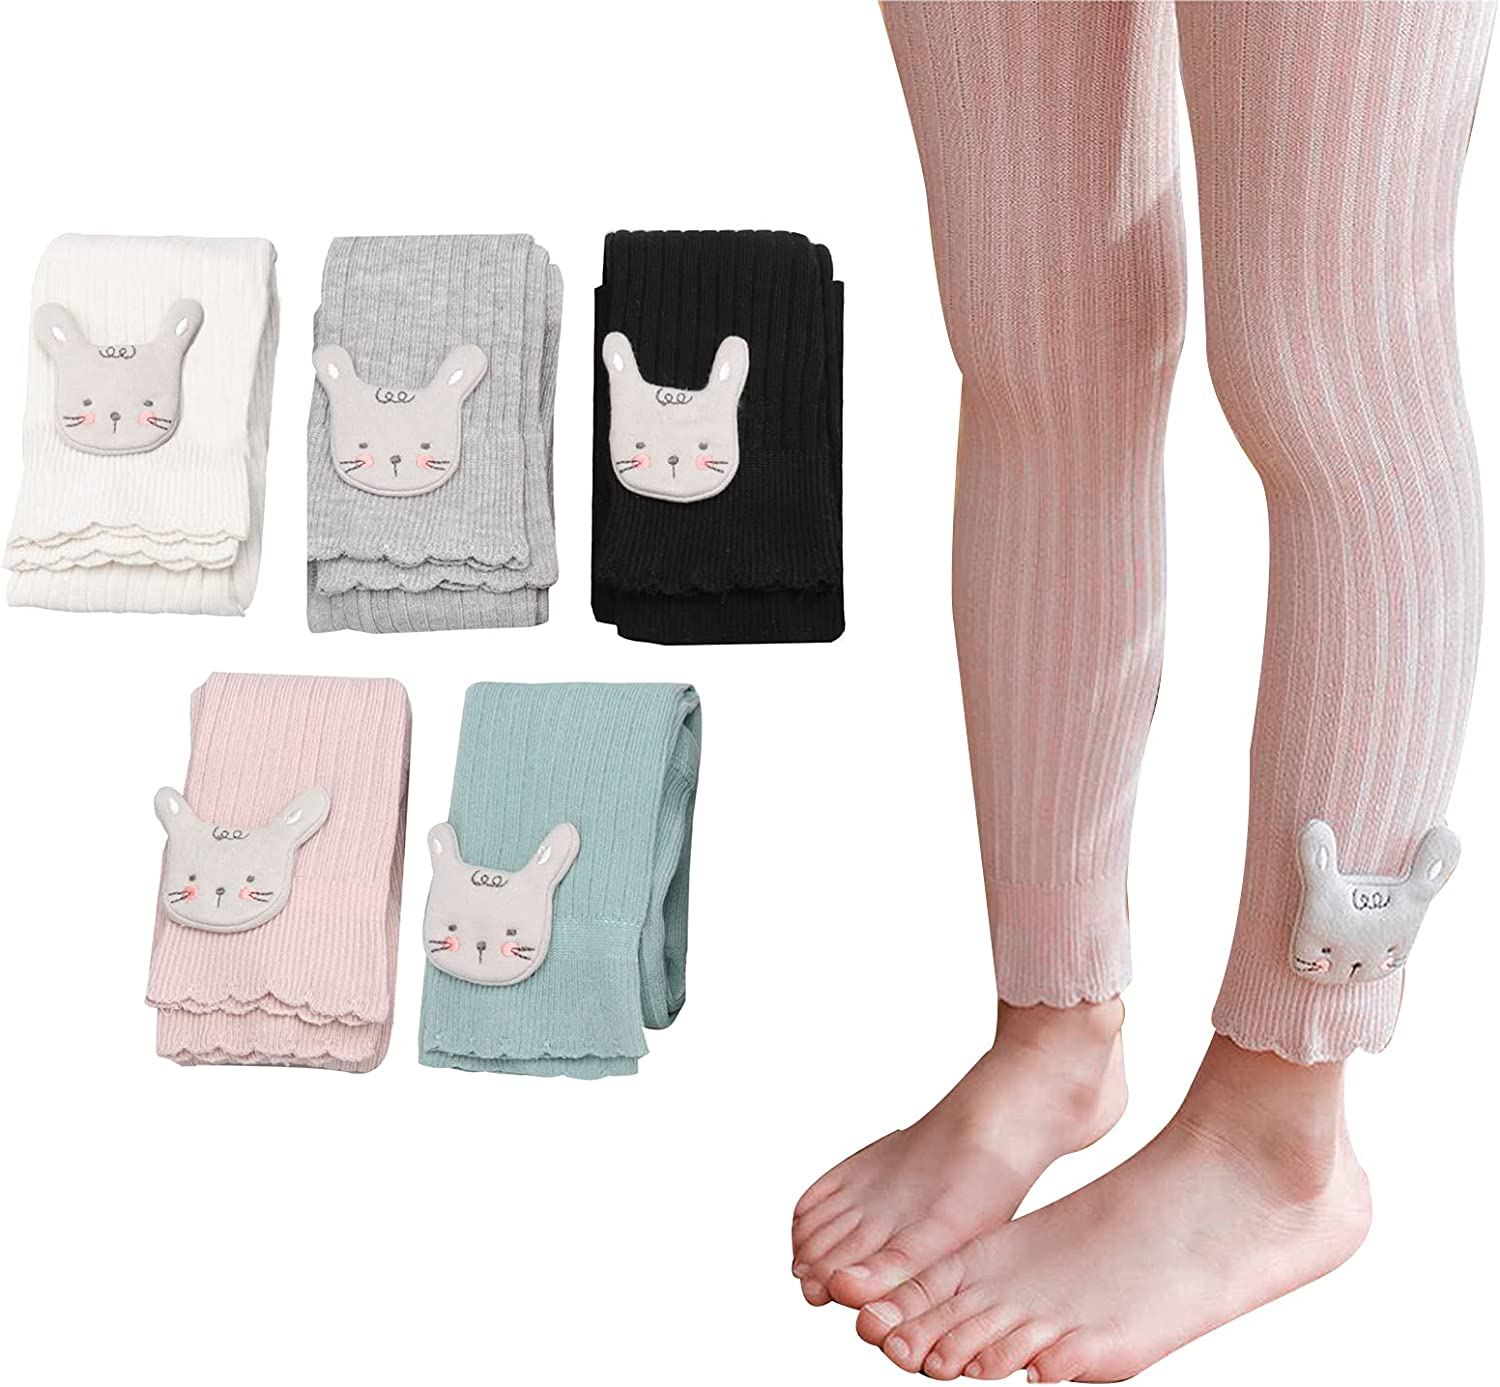 5 Pack Baby Todder Girl Cable Knit Leggings Footless Tights Pants Cotton Infant kids Stocking Pantyhose 0-6T